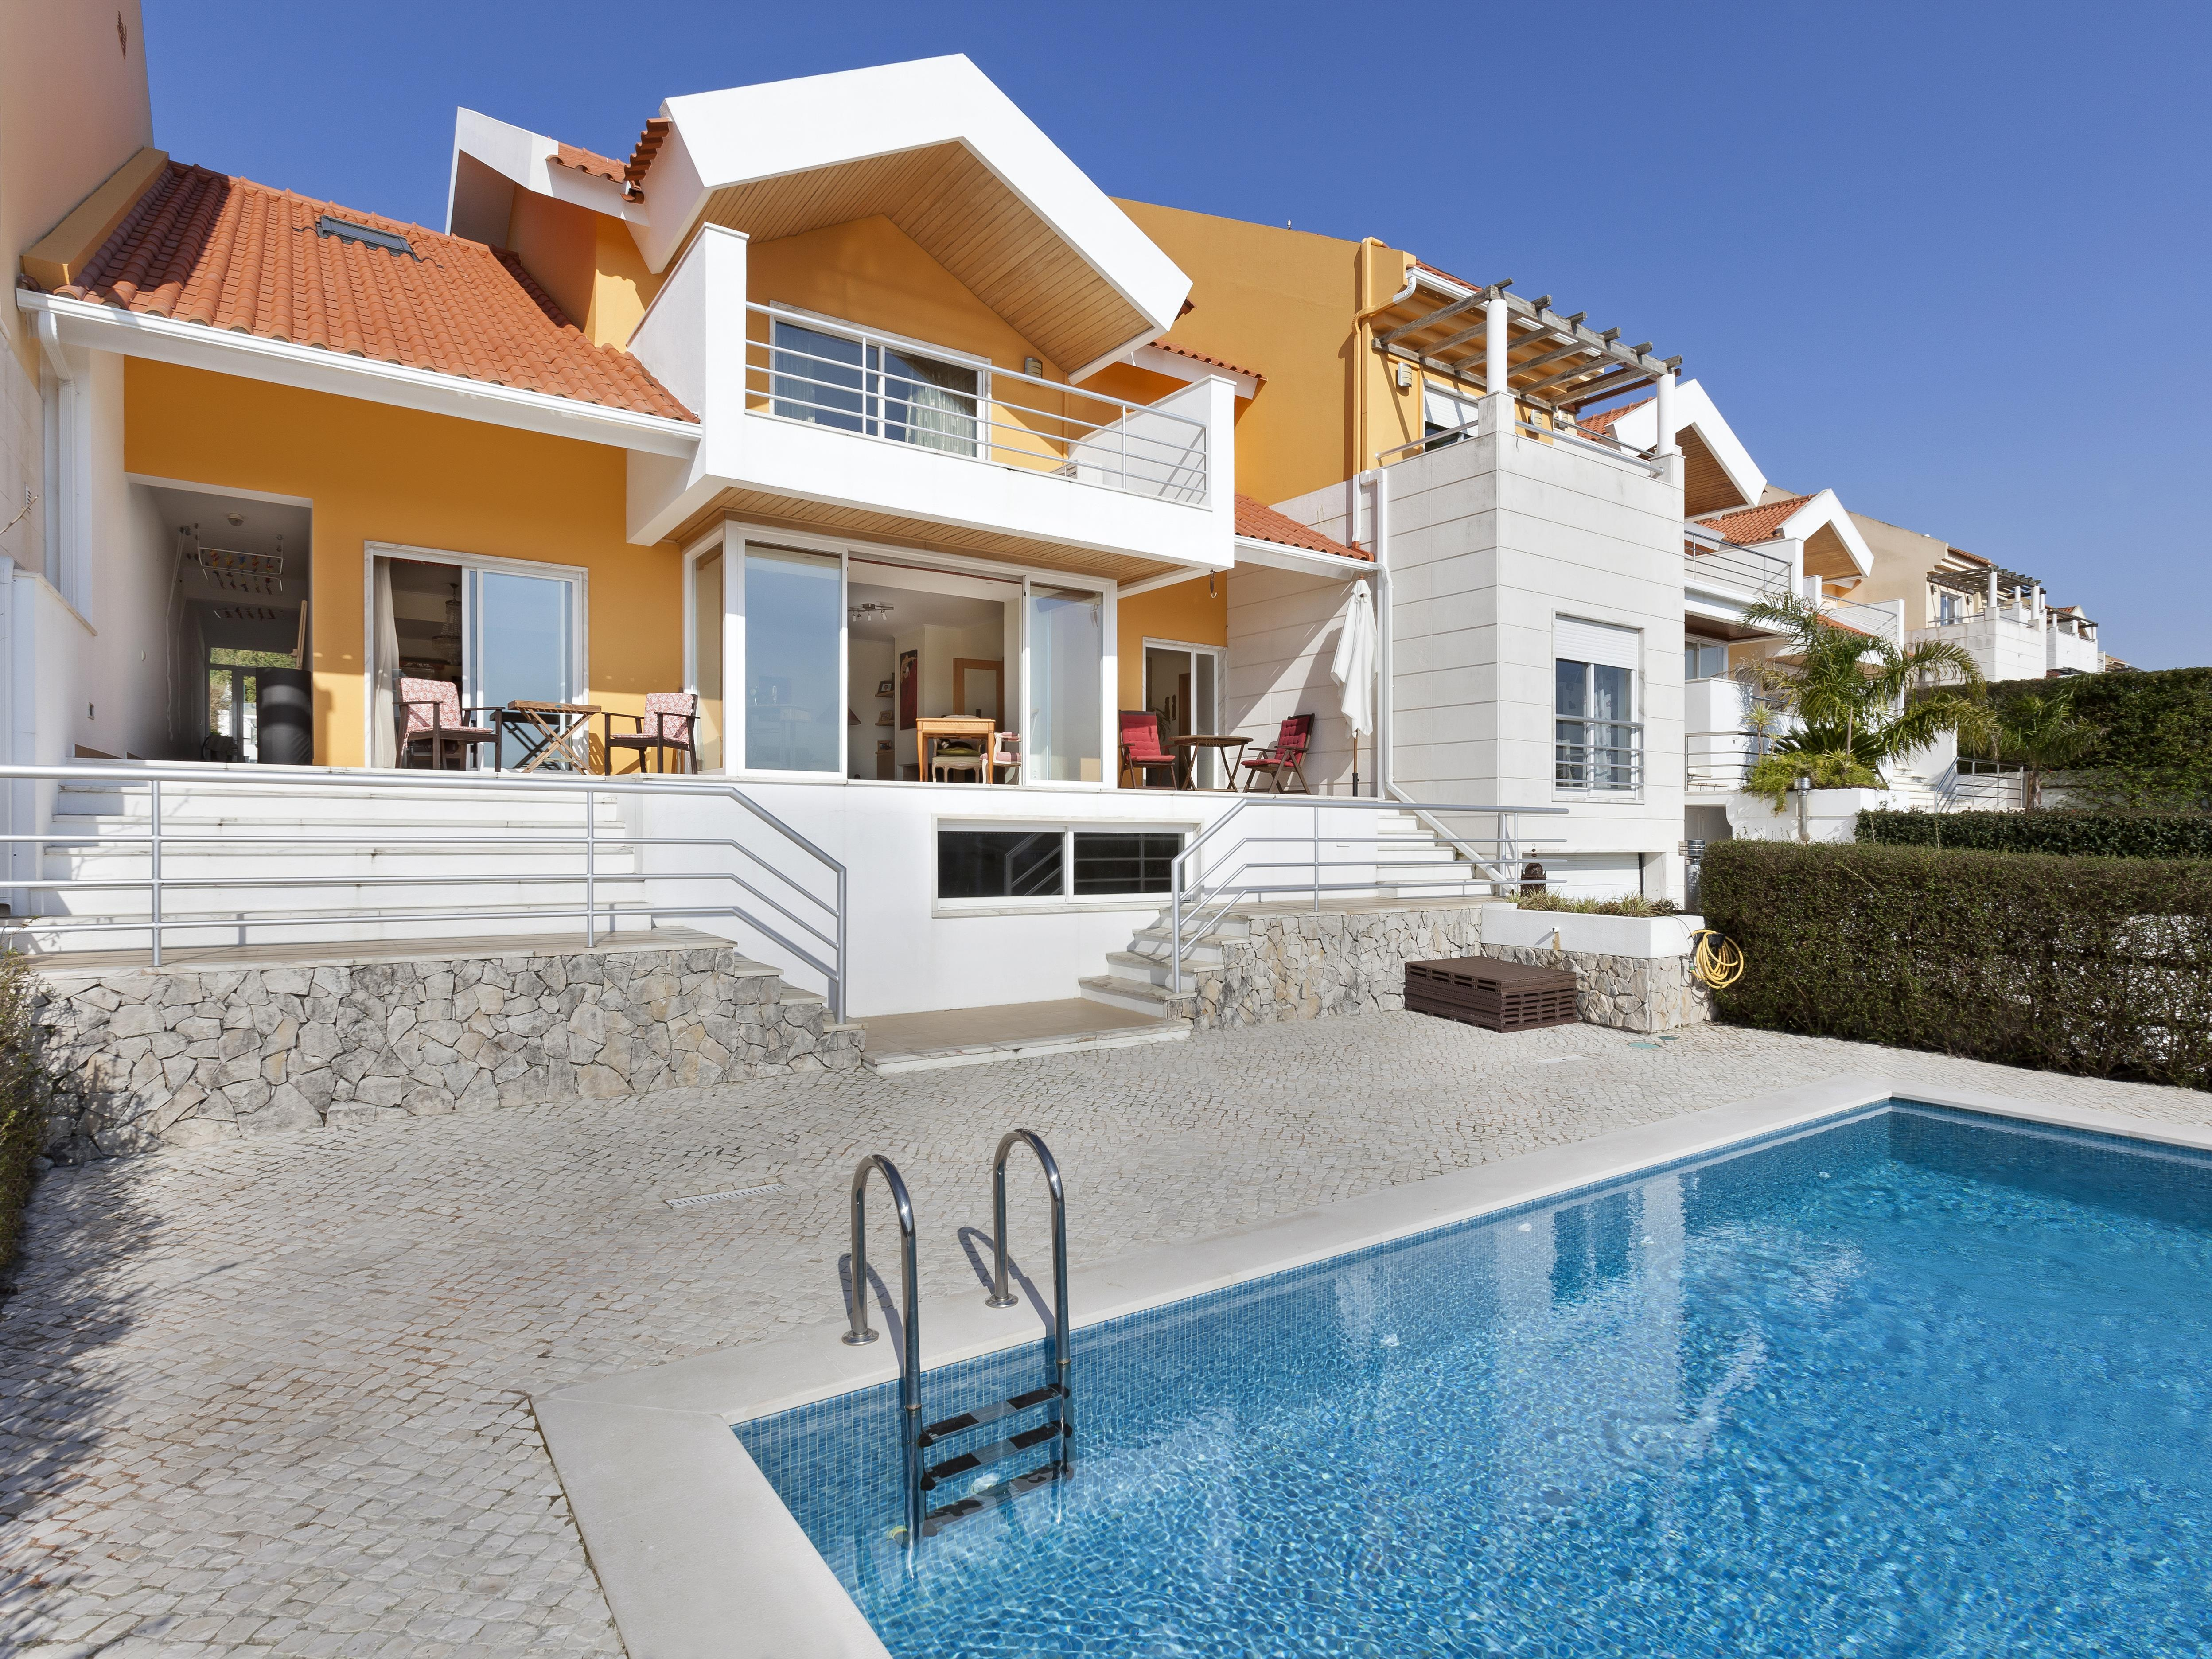 Single Family Home for Sale at House, 5 bedrooms, for Sale Sintra, Lisboa, Portugal